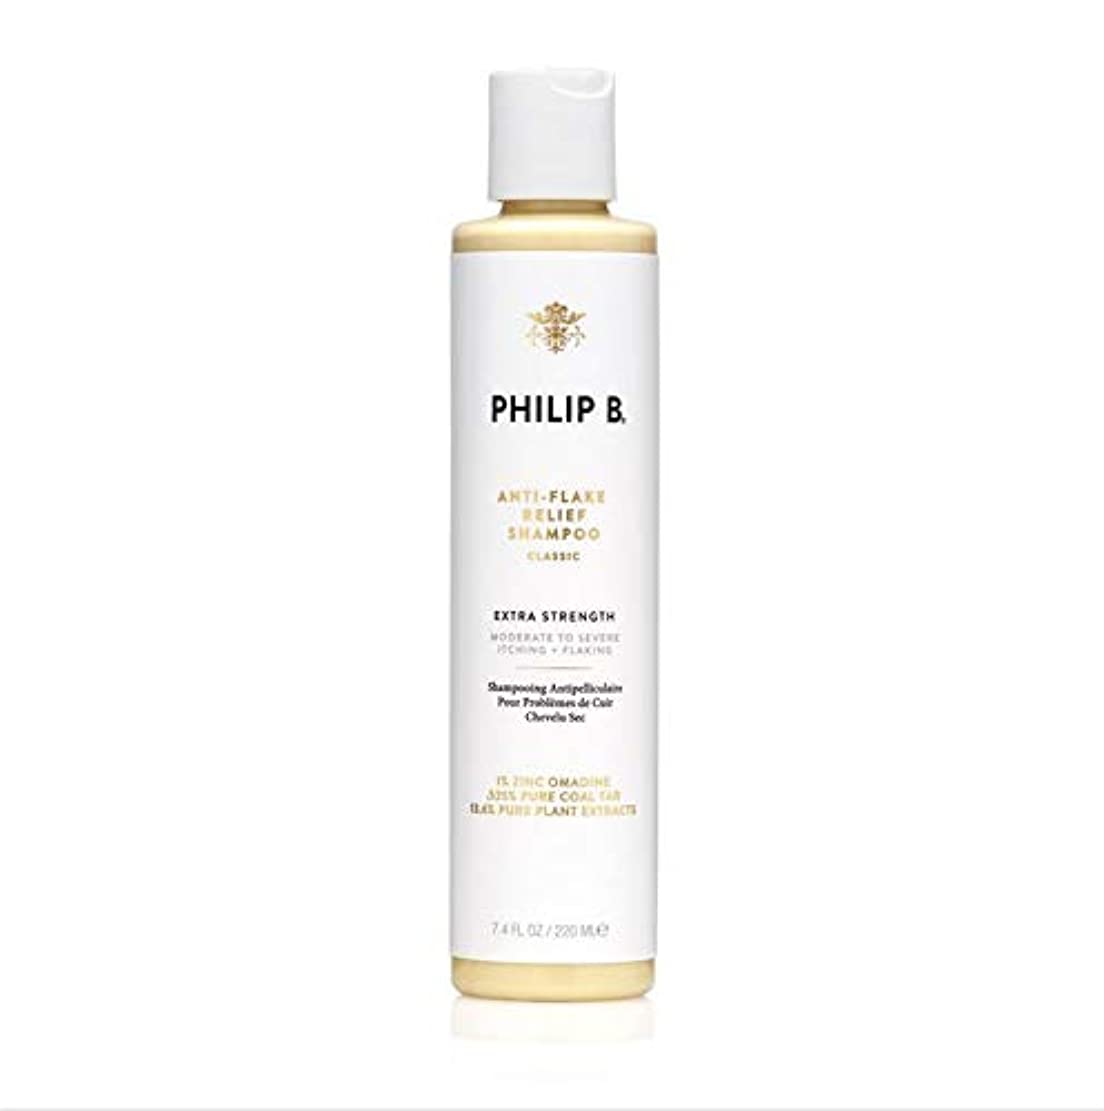 Anti-Flake Relief by Philip B Botanical Products Shampoo 220ml